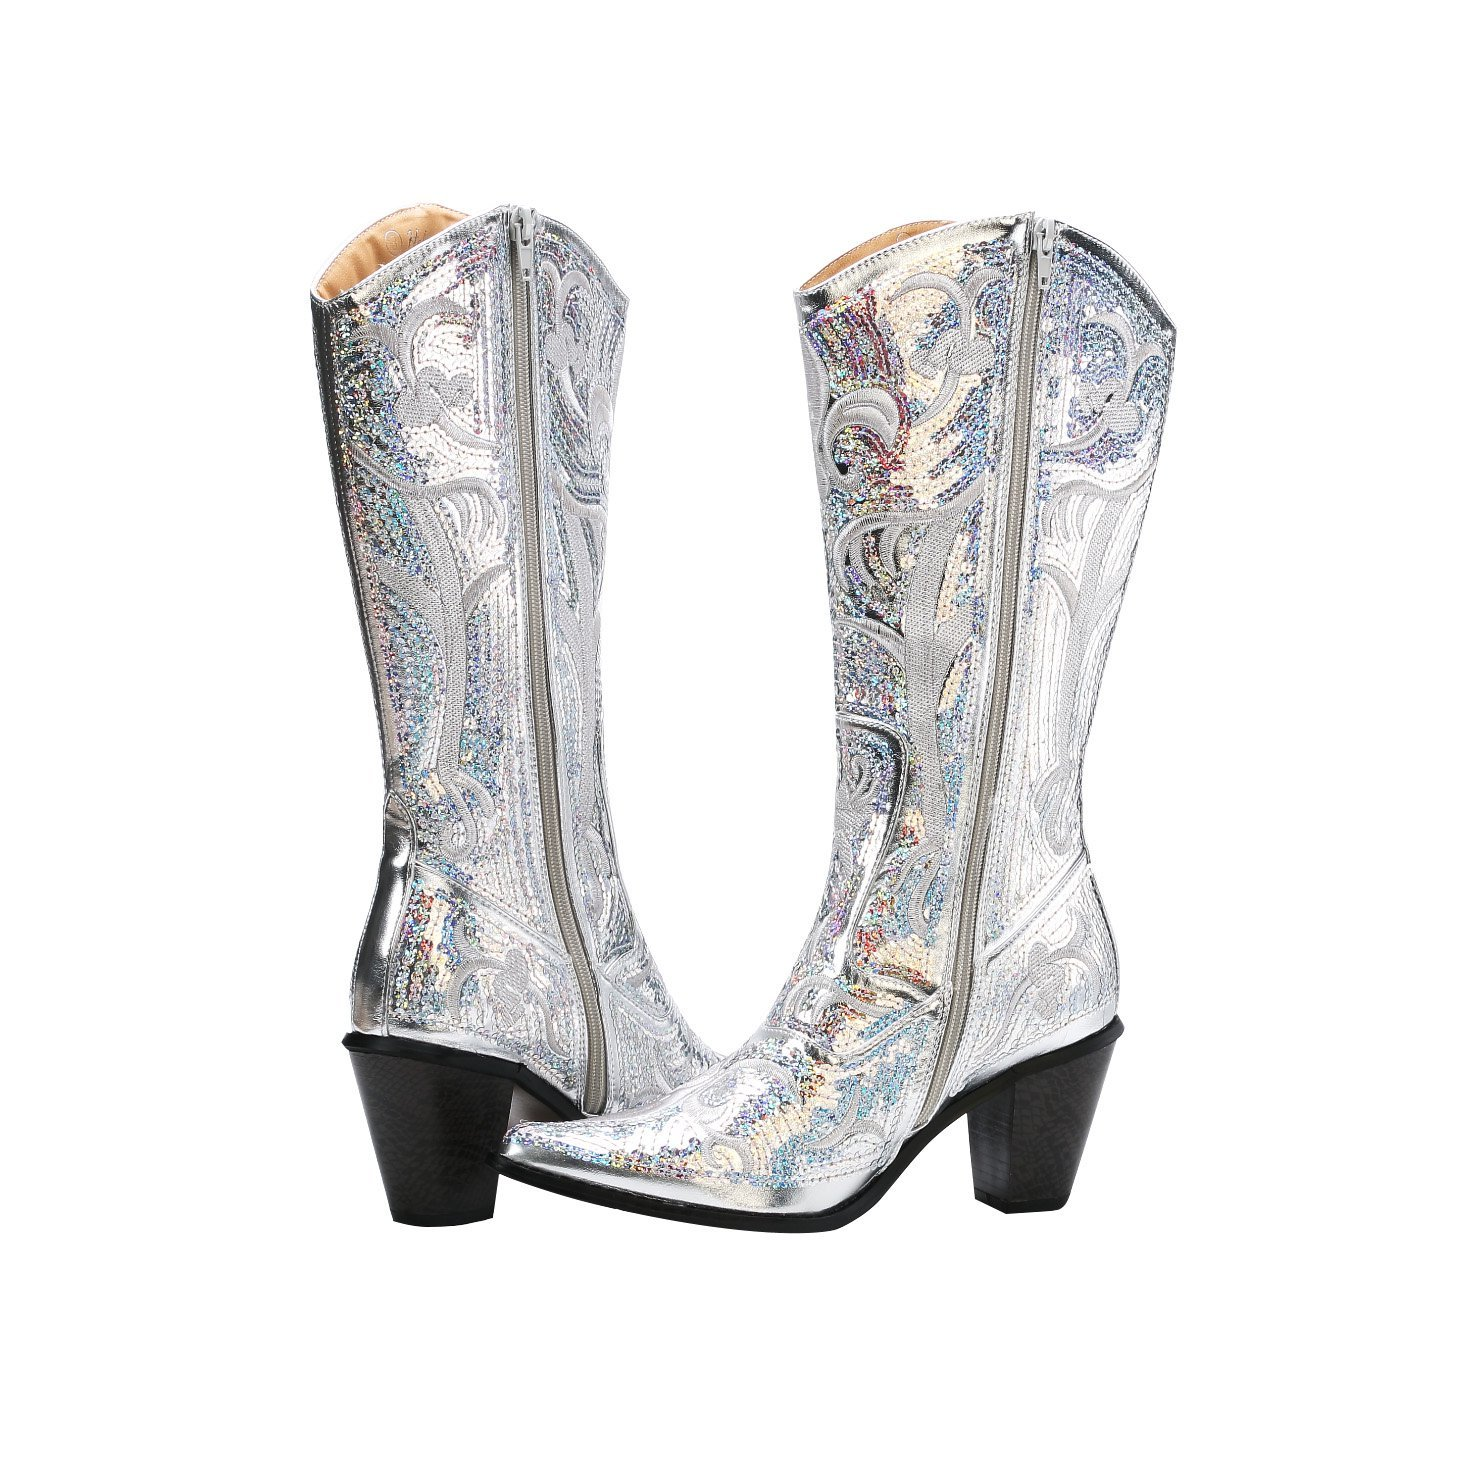 Helens Heart Bling Boots B00MC8F364 10 M US|Silver